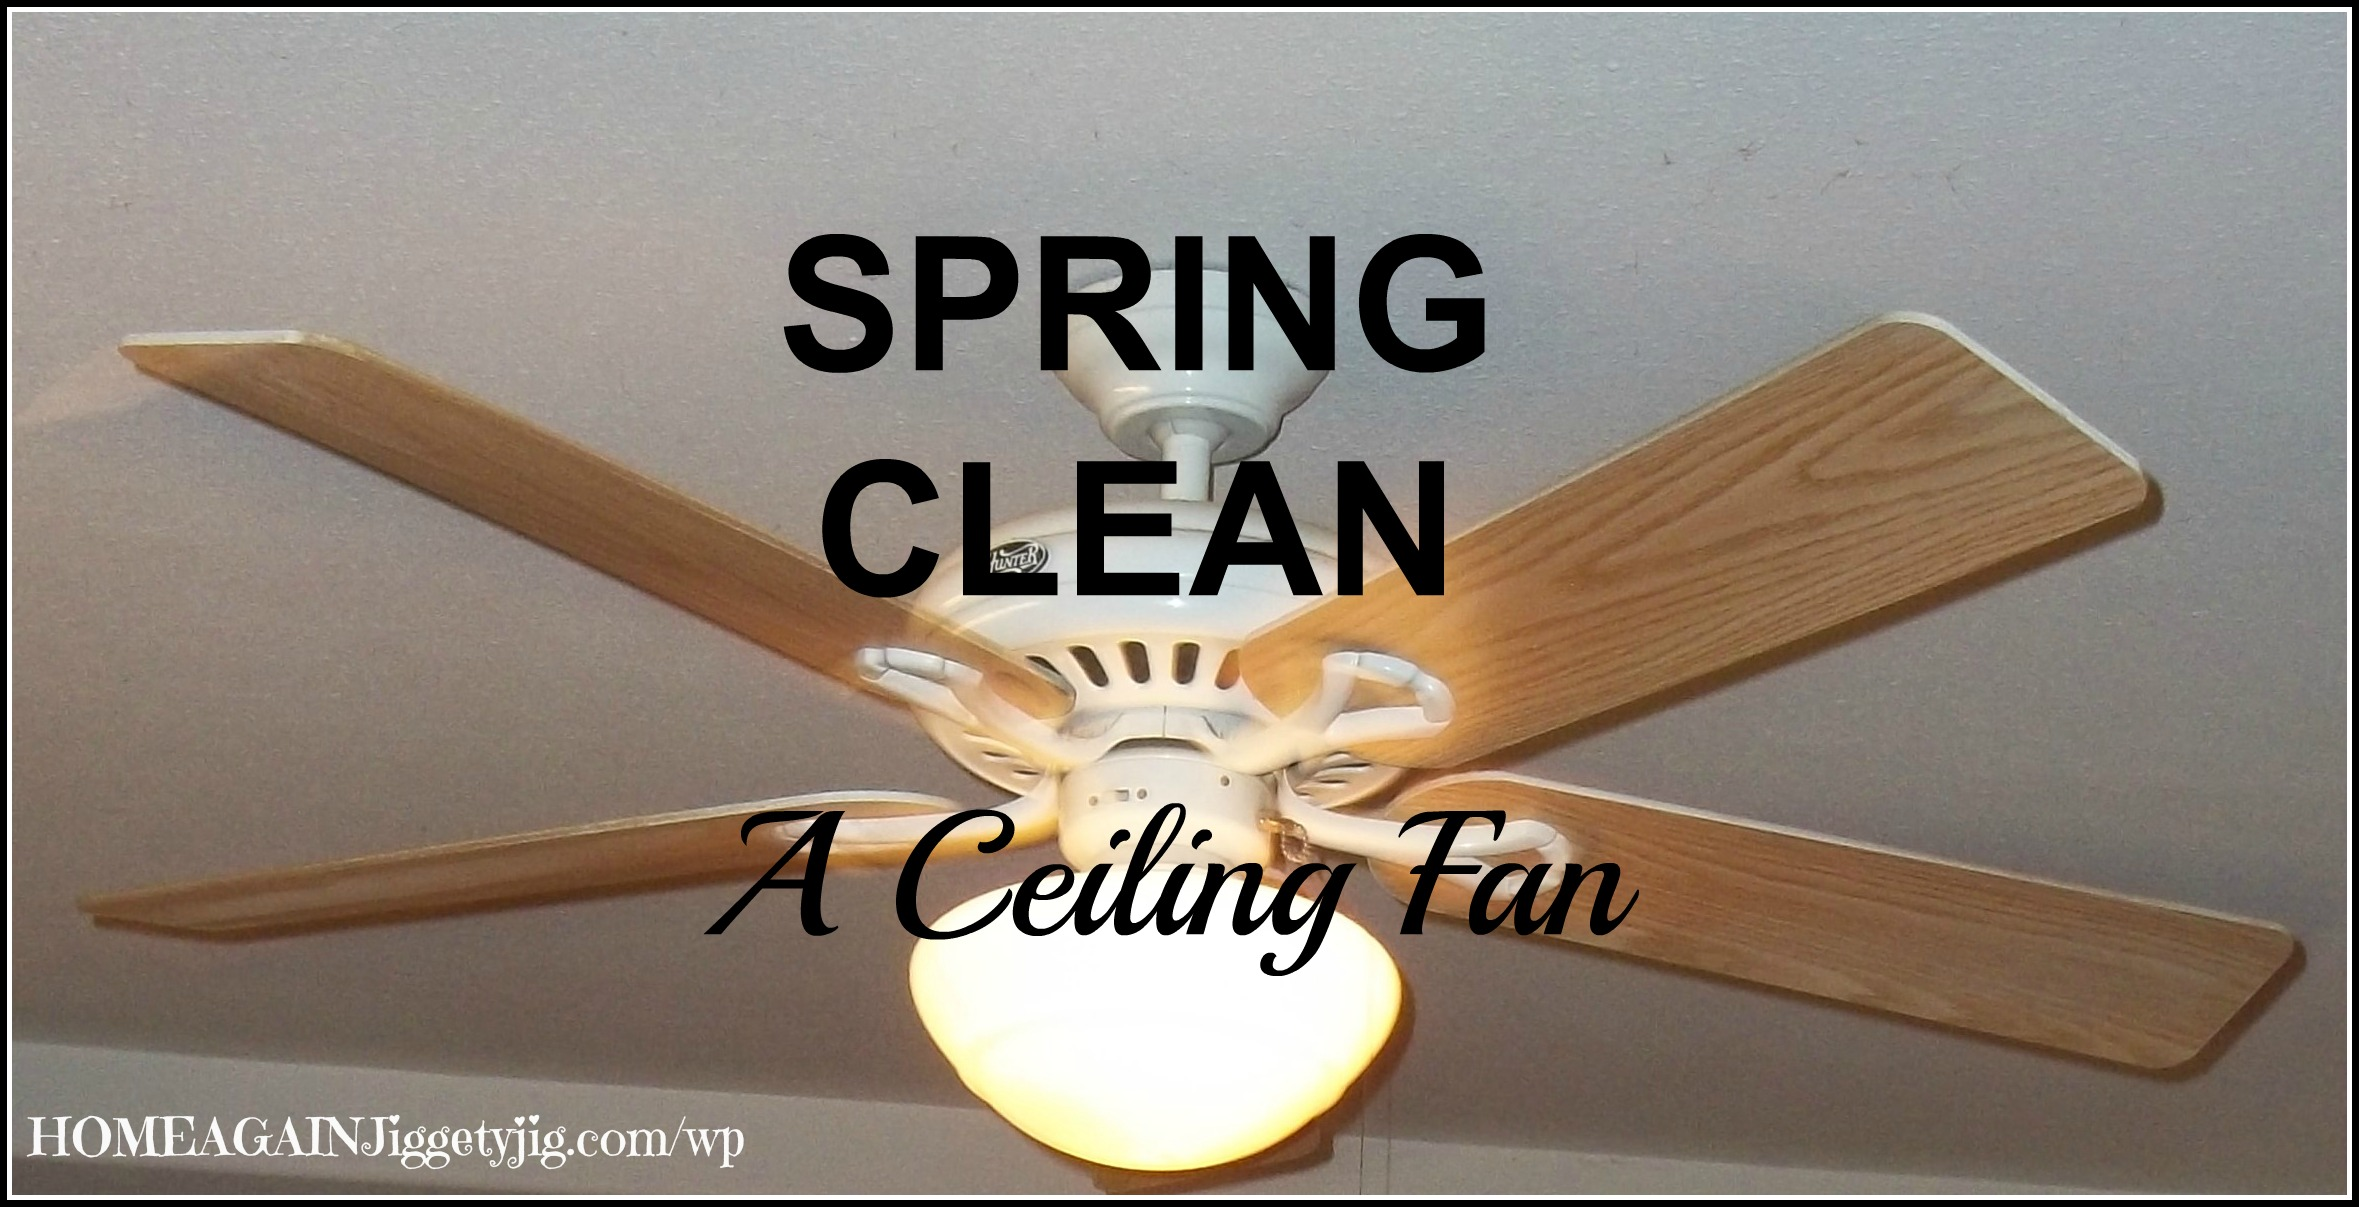 Spring Clean A Ceiling Fan Or A Clever Way To Use A